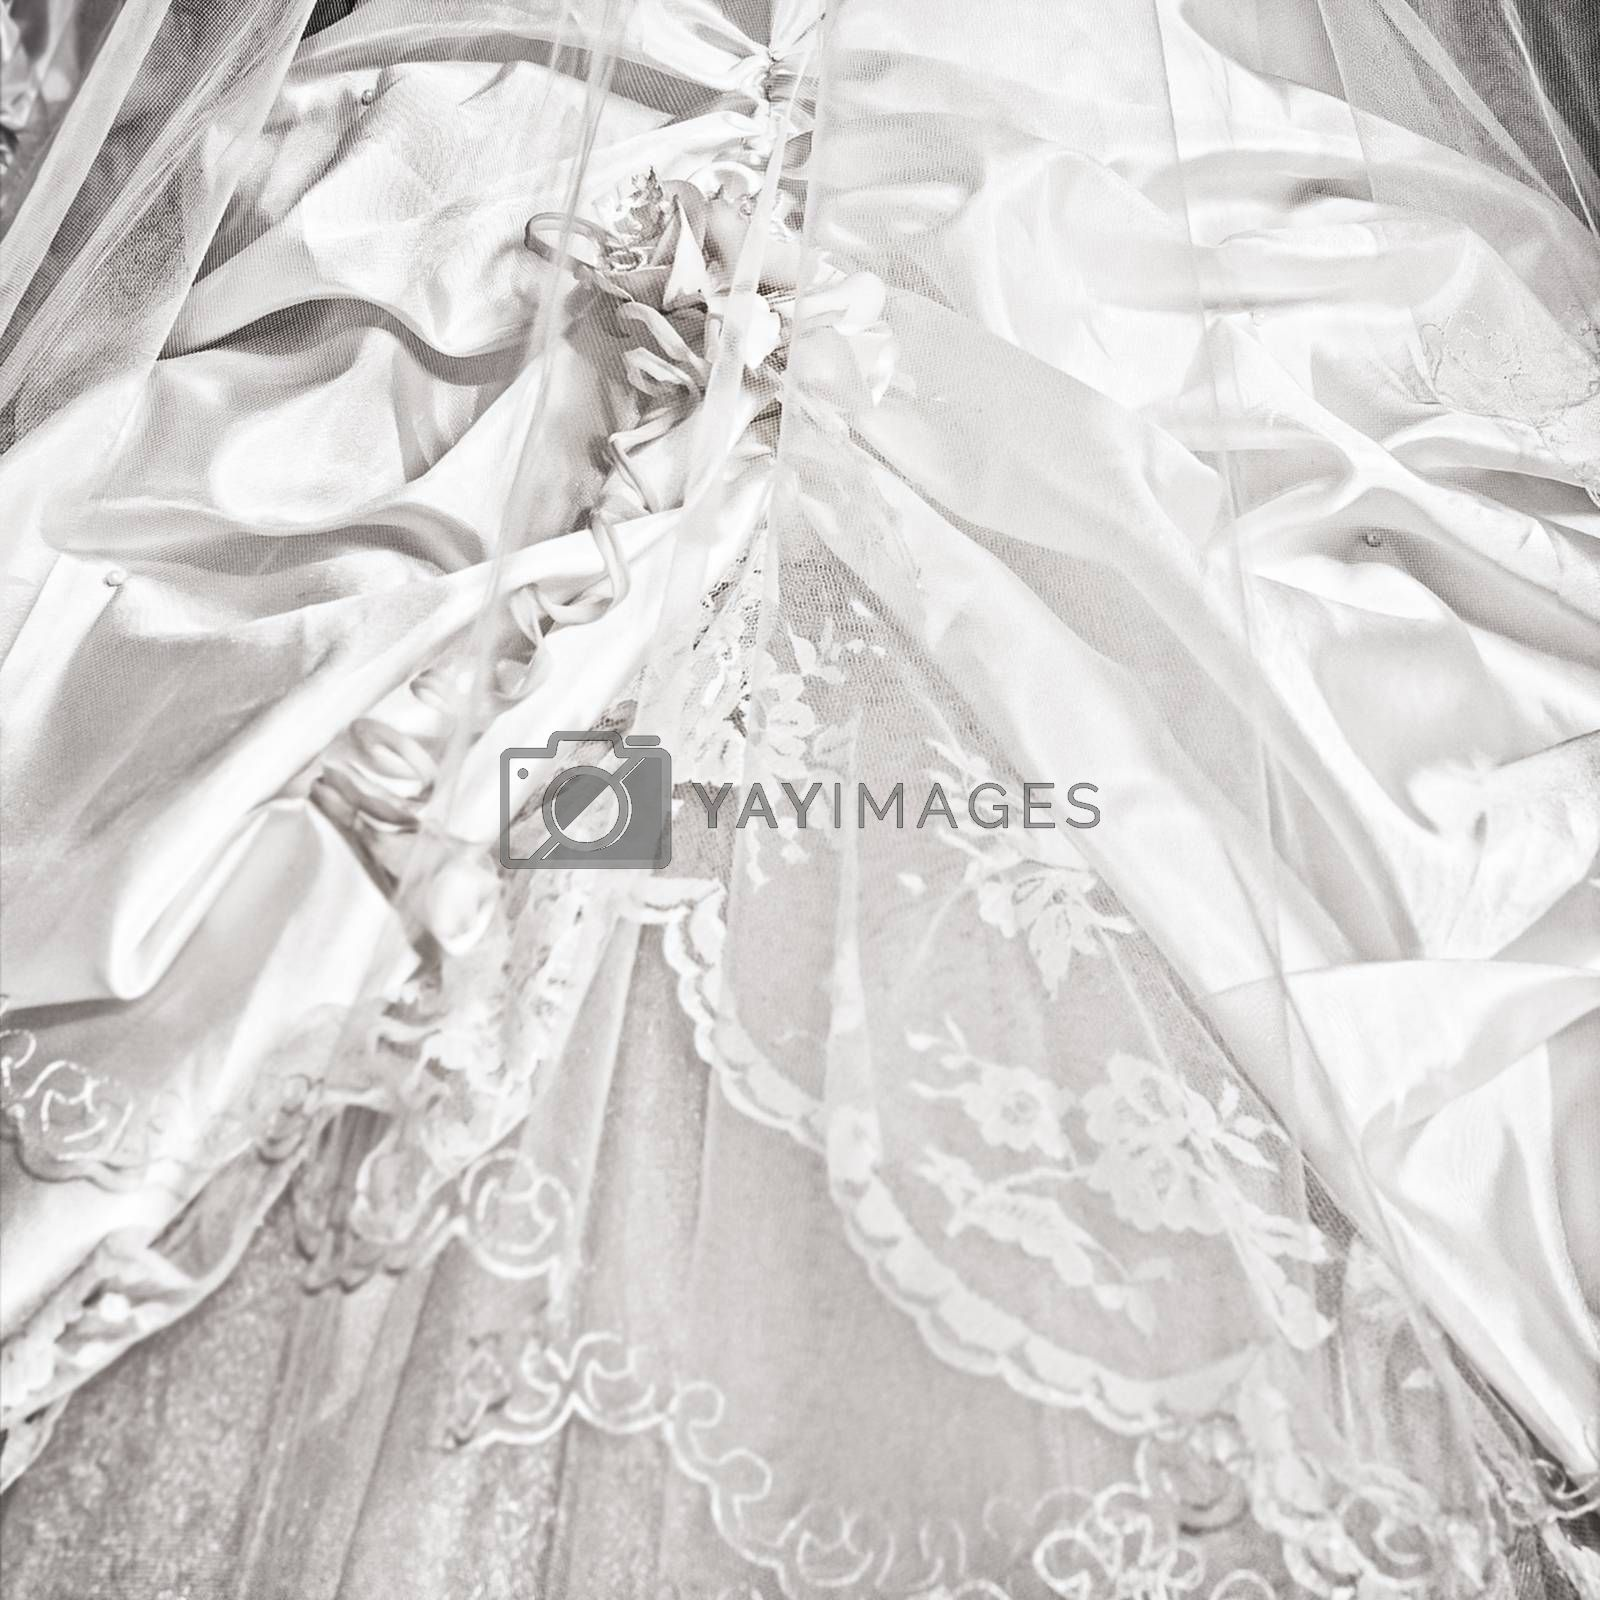 Wedding dresses in a bridal shop, fashion and style brand